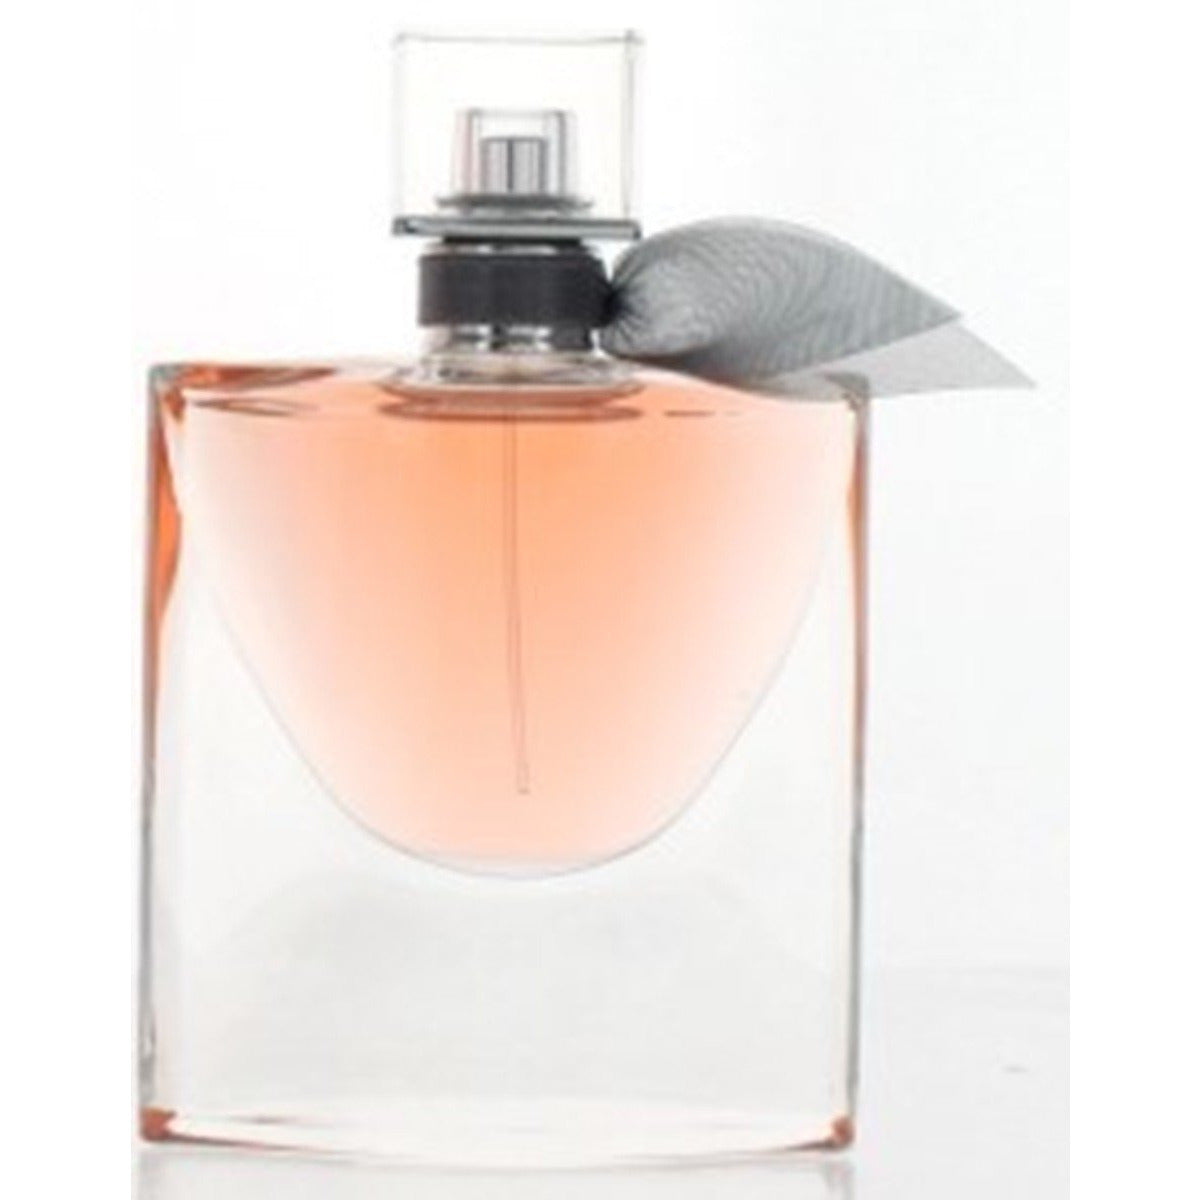 La vie est belle by Lancome perfume for her L